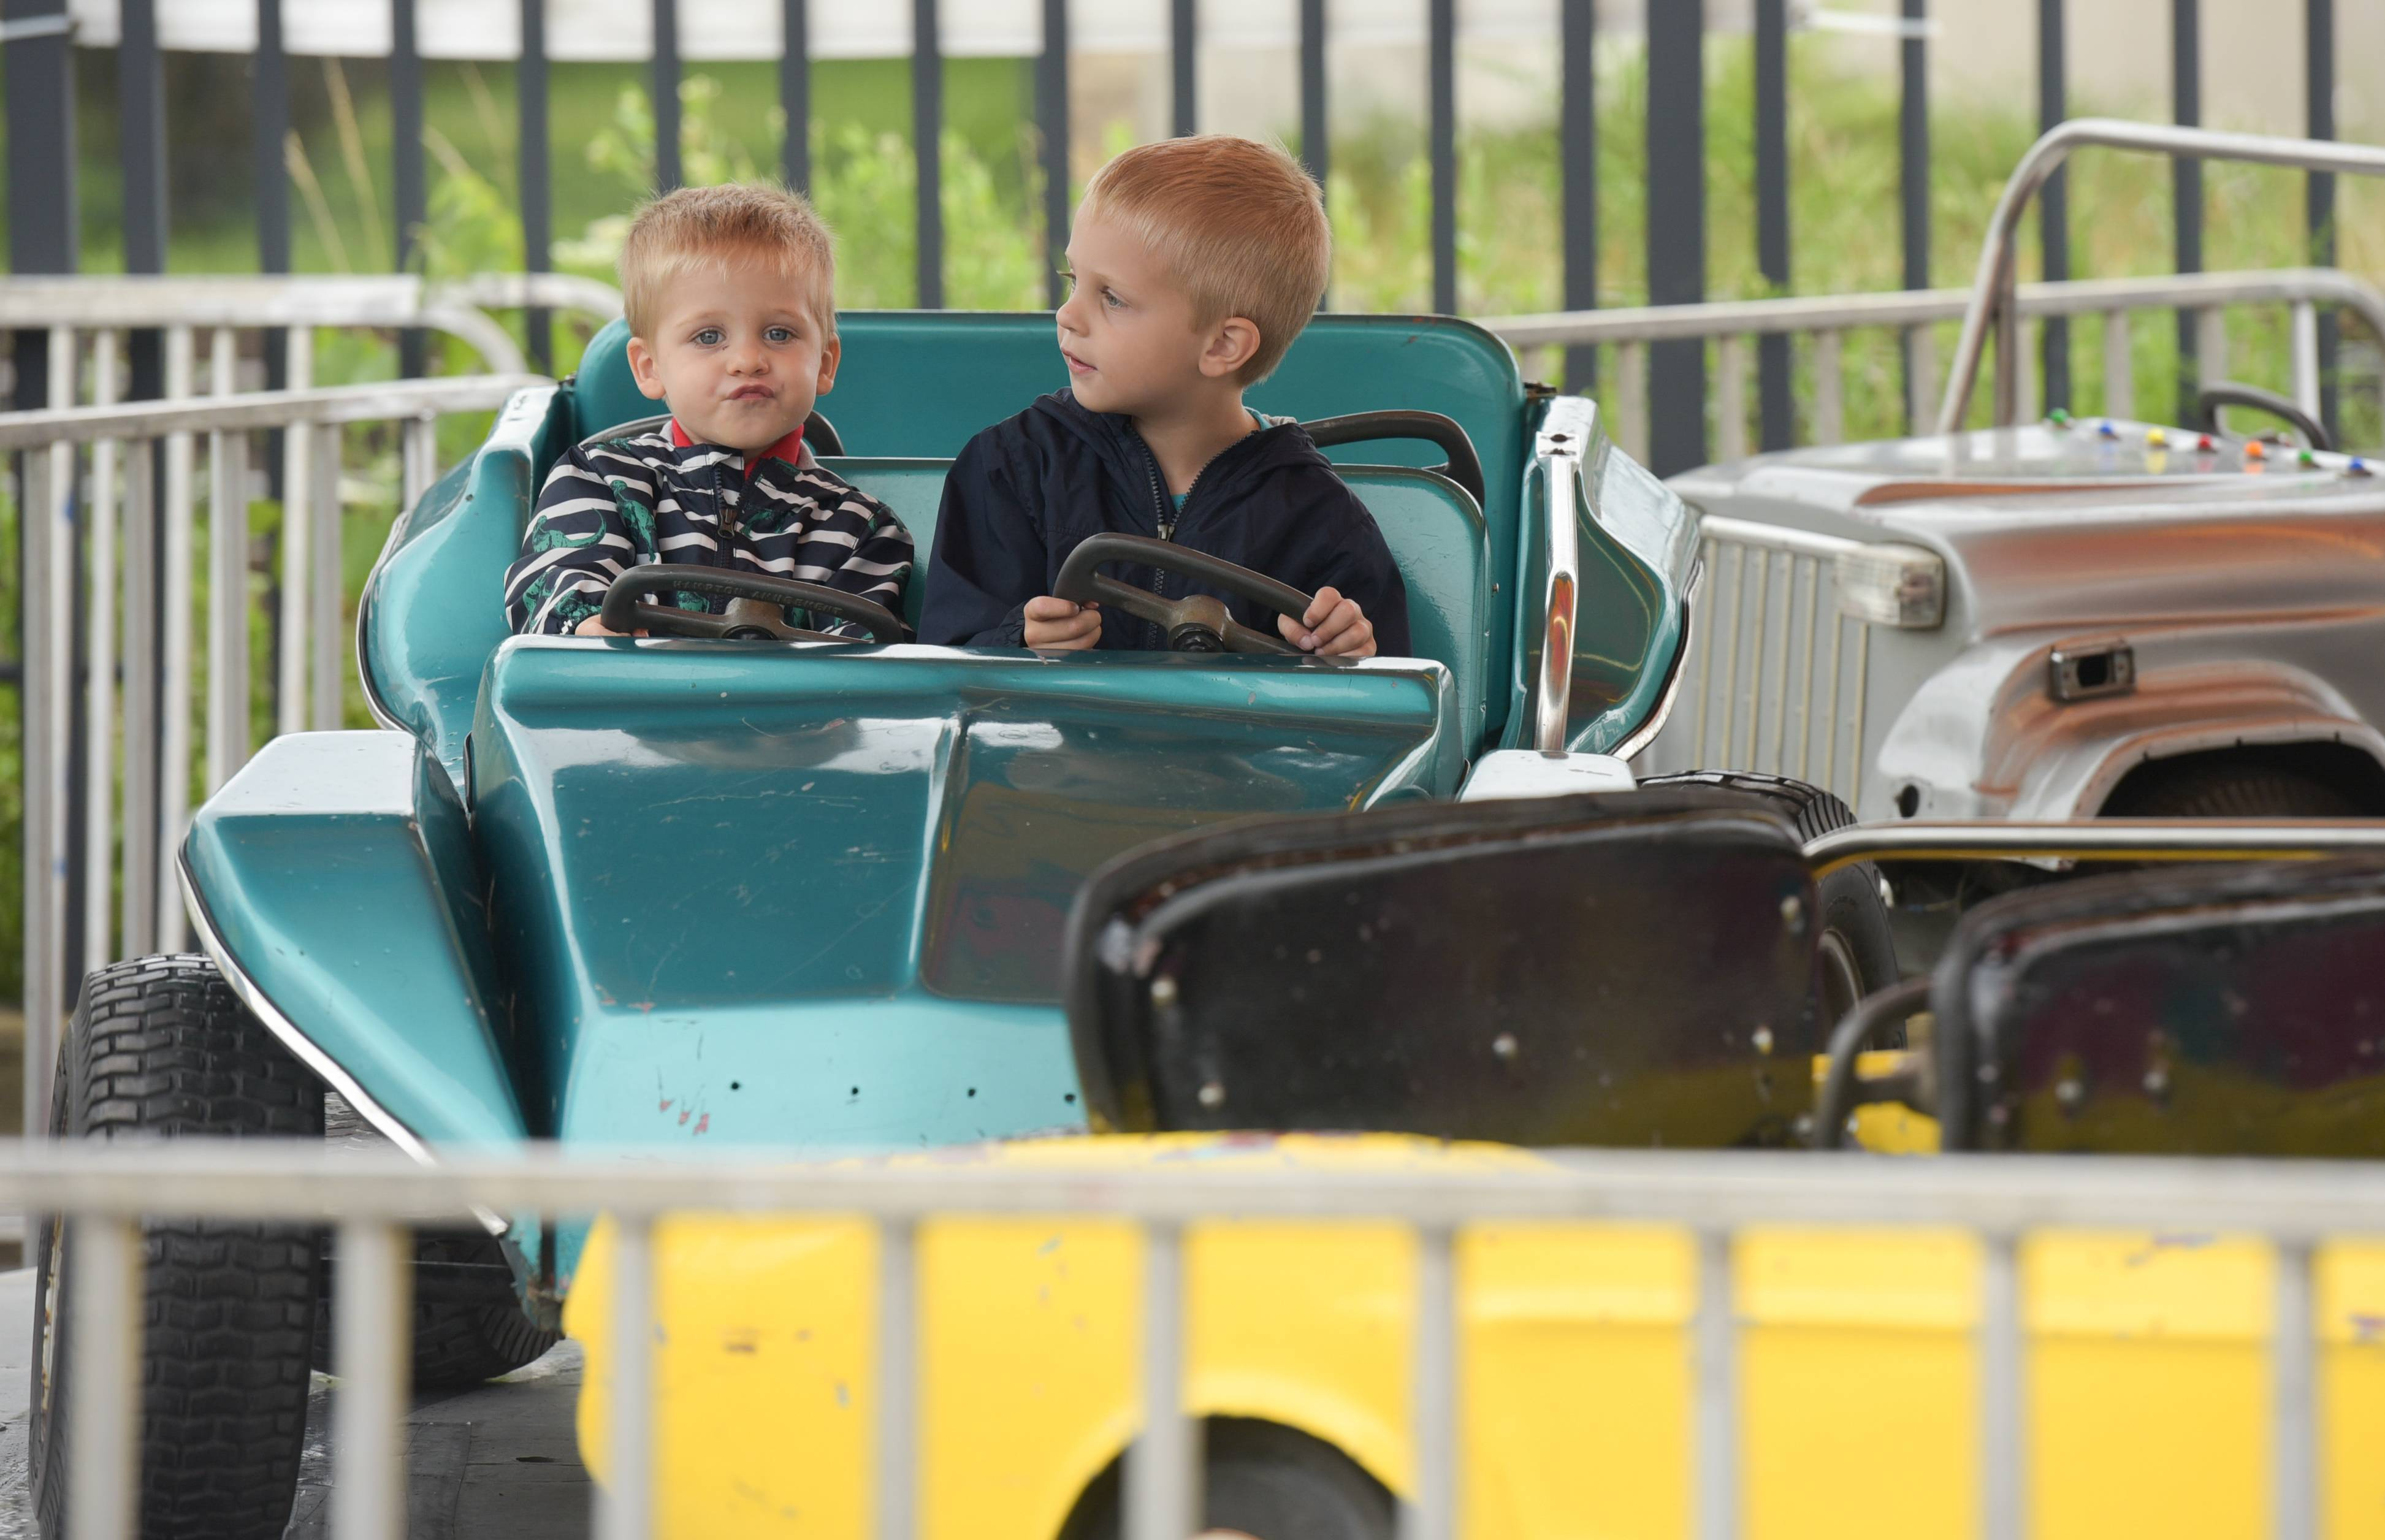 Michael, 2, and Travis, 4, Bruschuk of Villa Park enjoy a carnival ride Sunday during the final day of Germanfest in Lombard. The annual festival is sponsored by Sacred Heart Catholic Church.